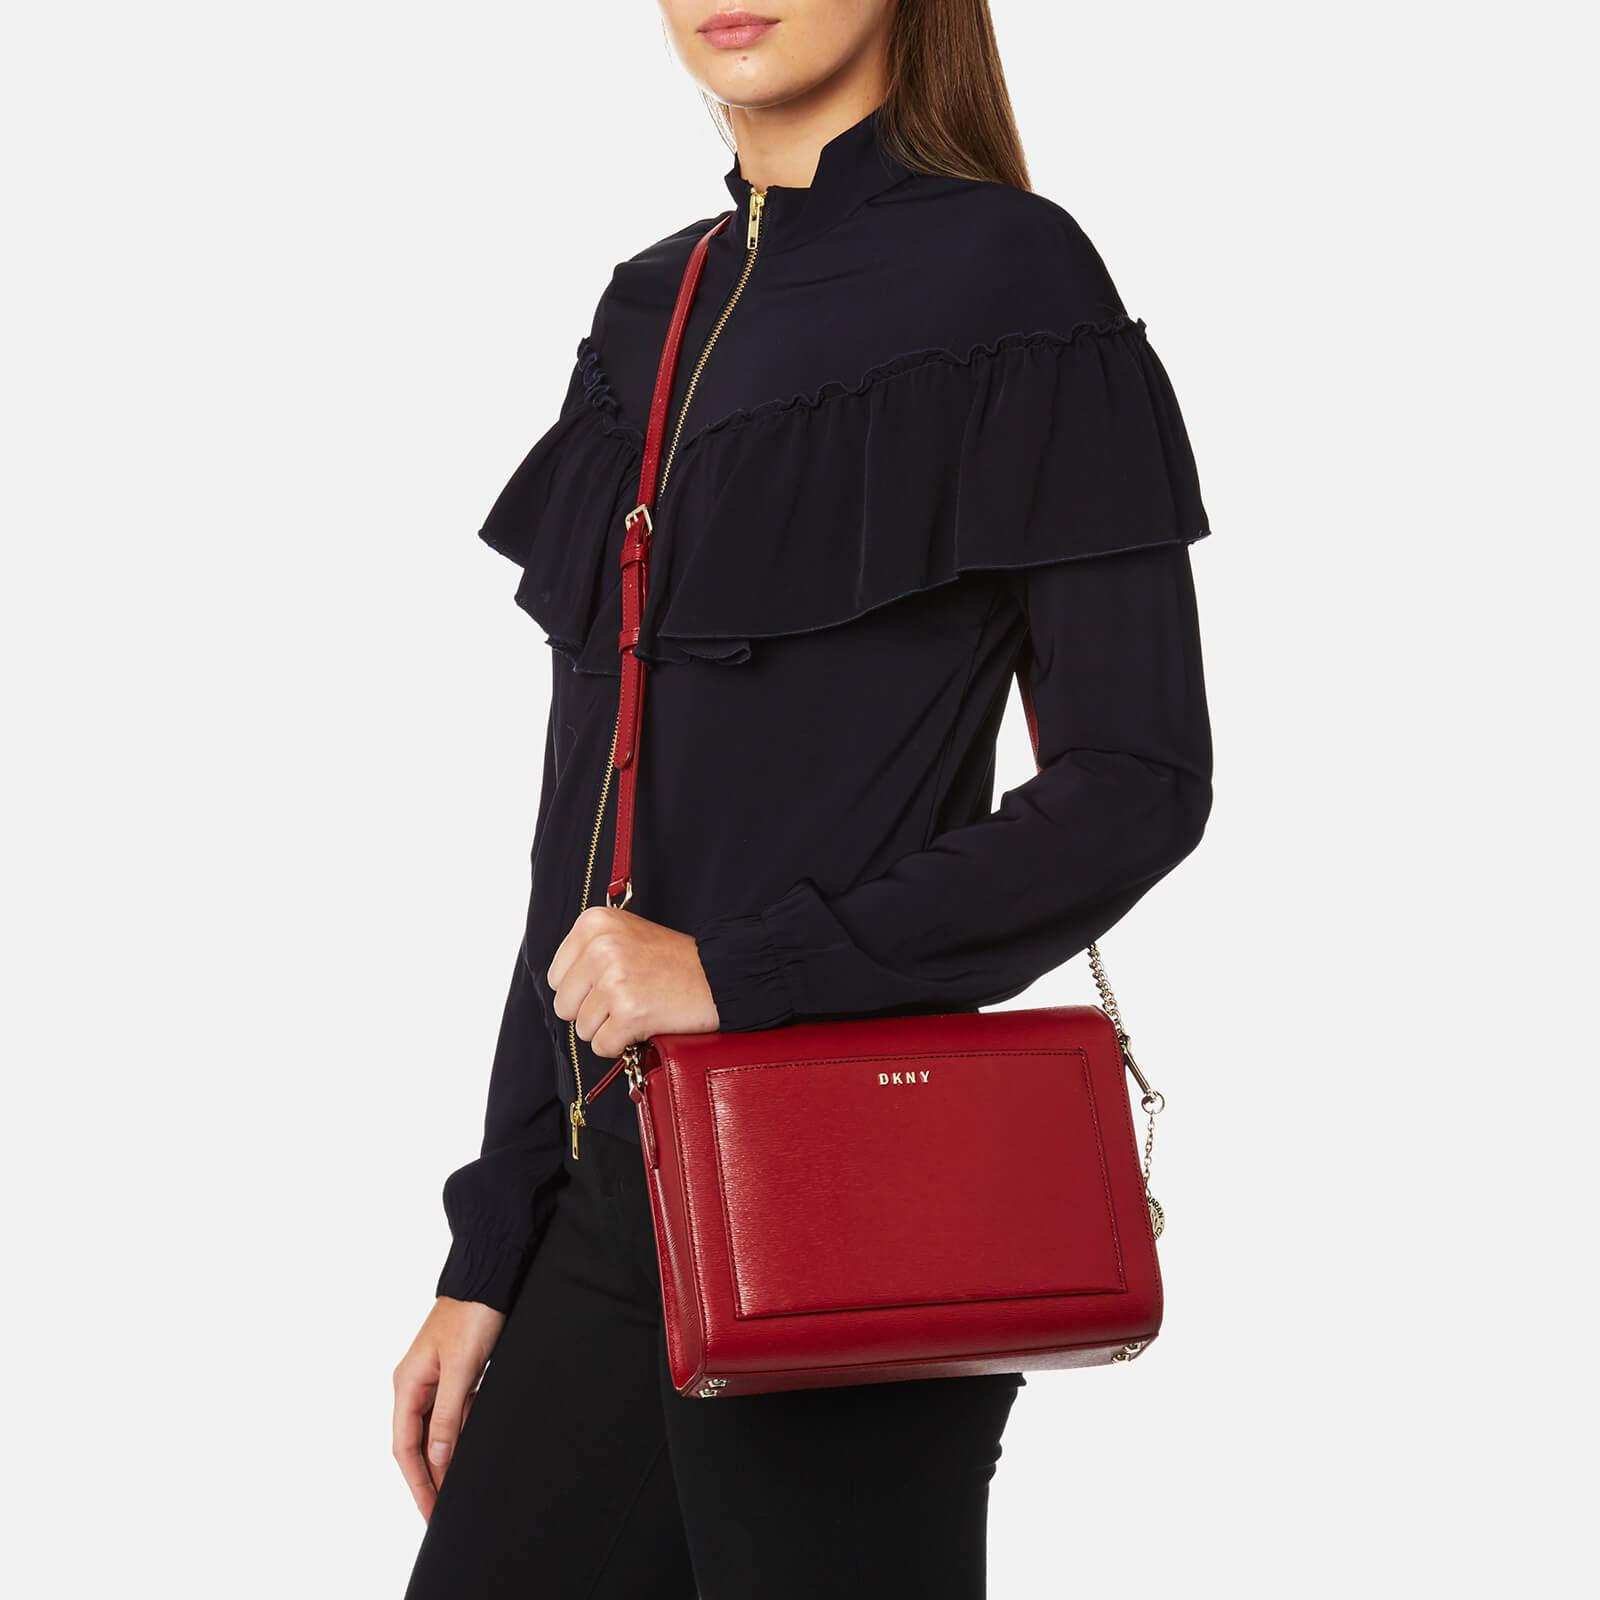 DKNY Leather Sutton Medium Box Cross Body Bag in Red